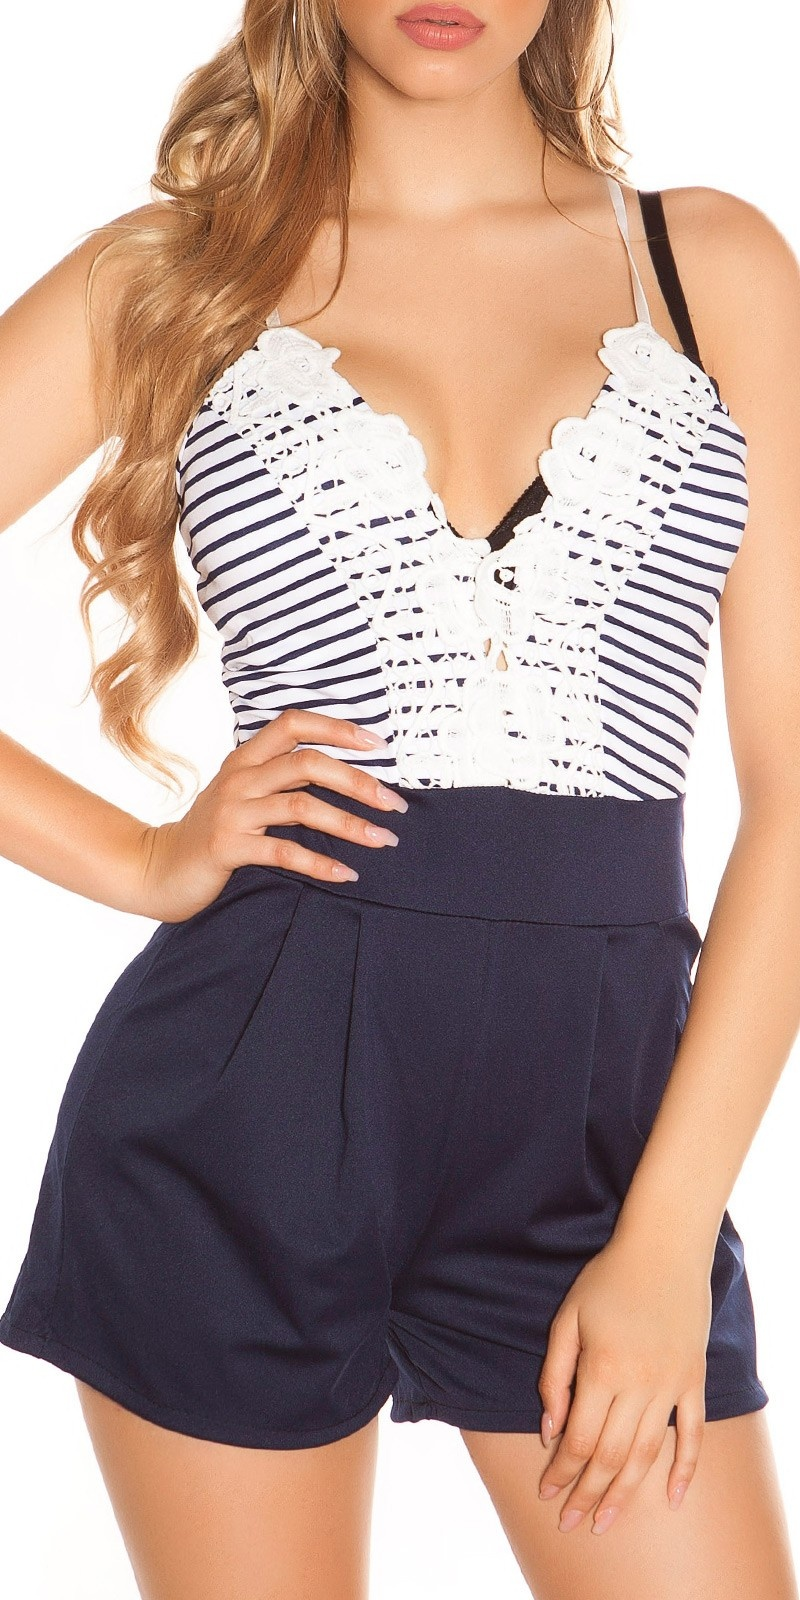 Sexy striped summer playsuit with lace Navy